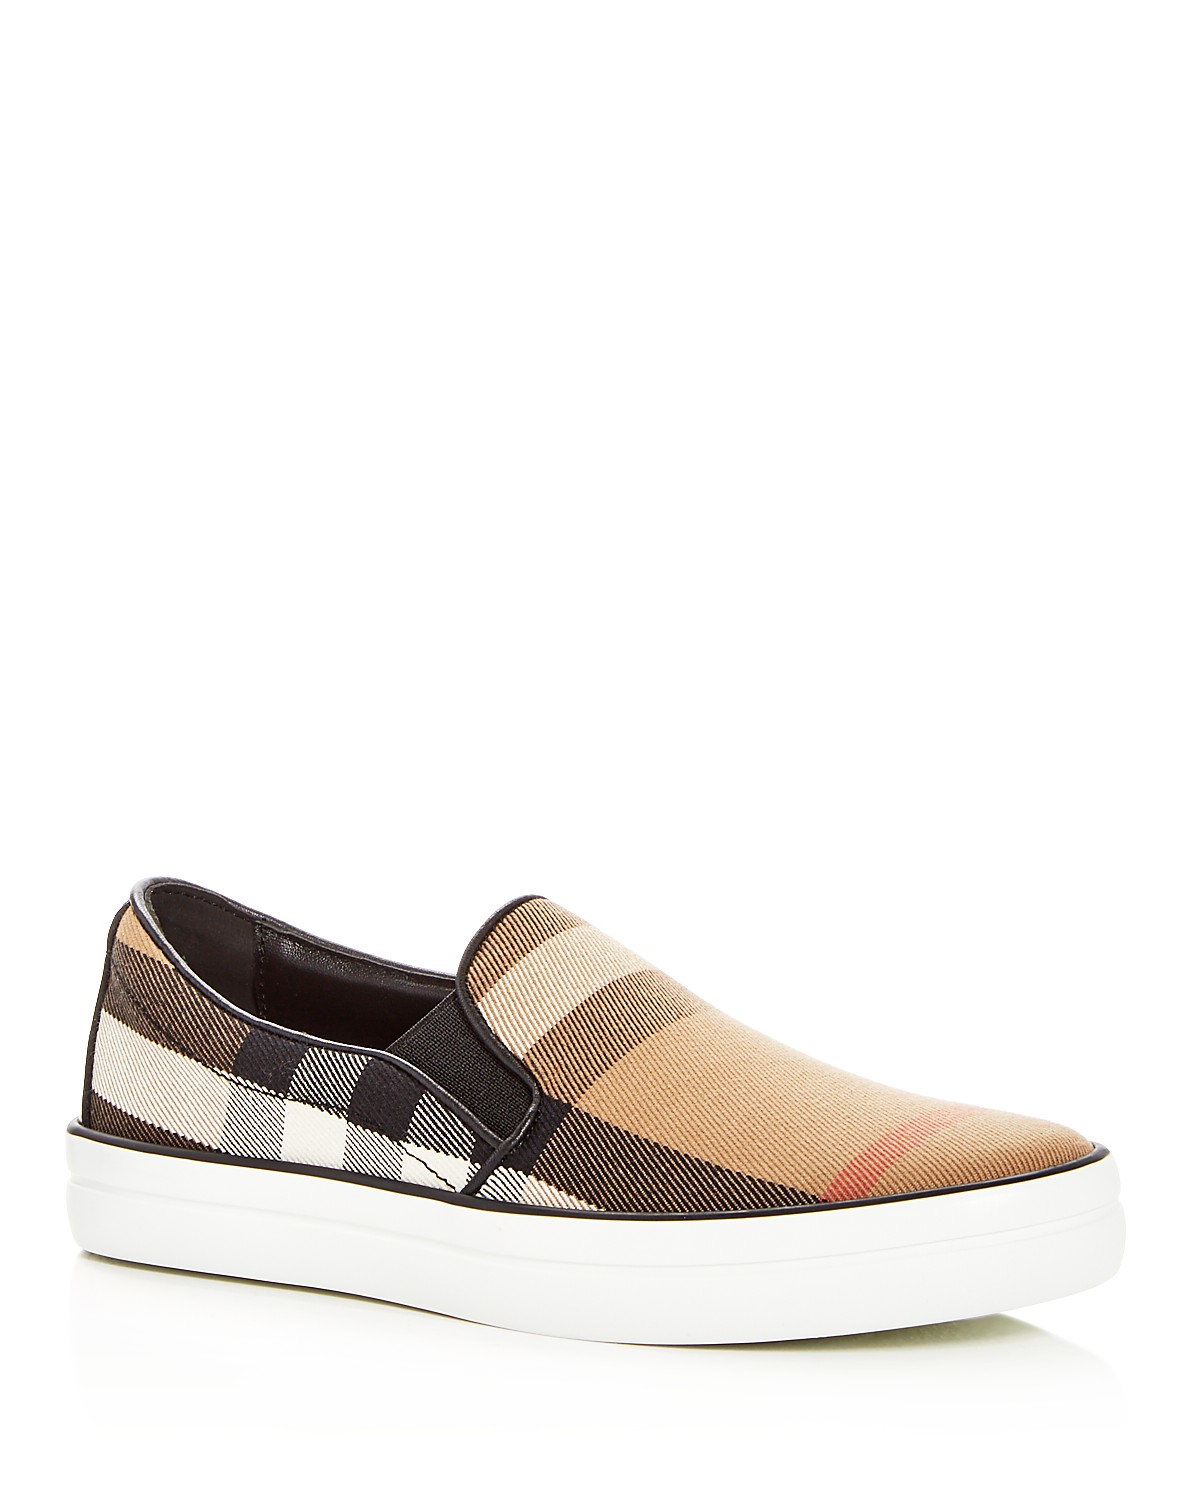 Burberry Women's Gauden Signature Check Slip-On Sneakers